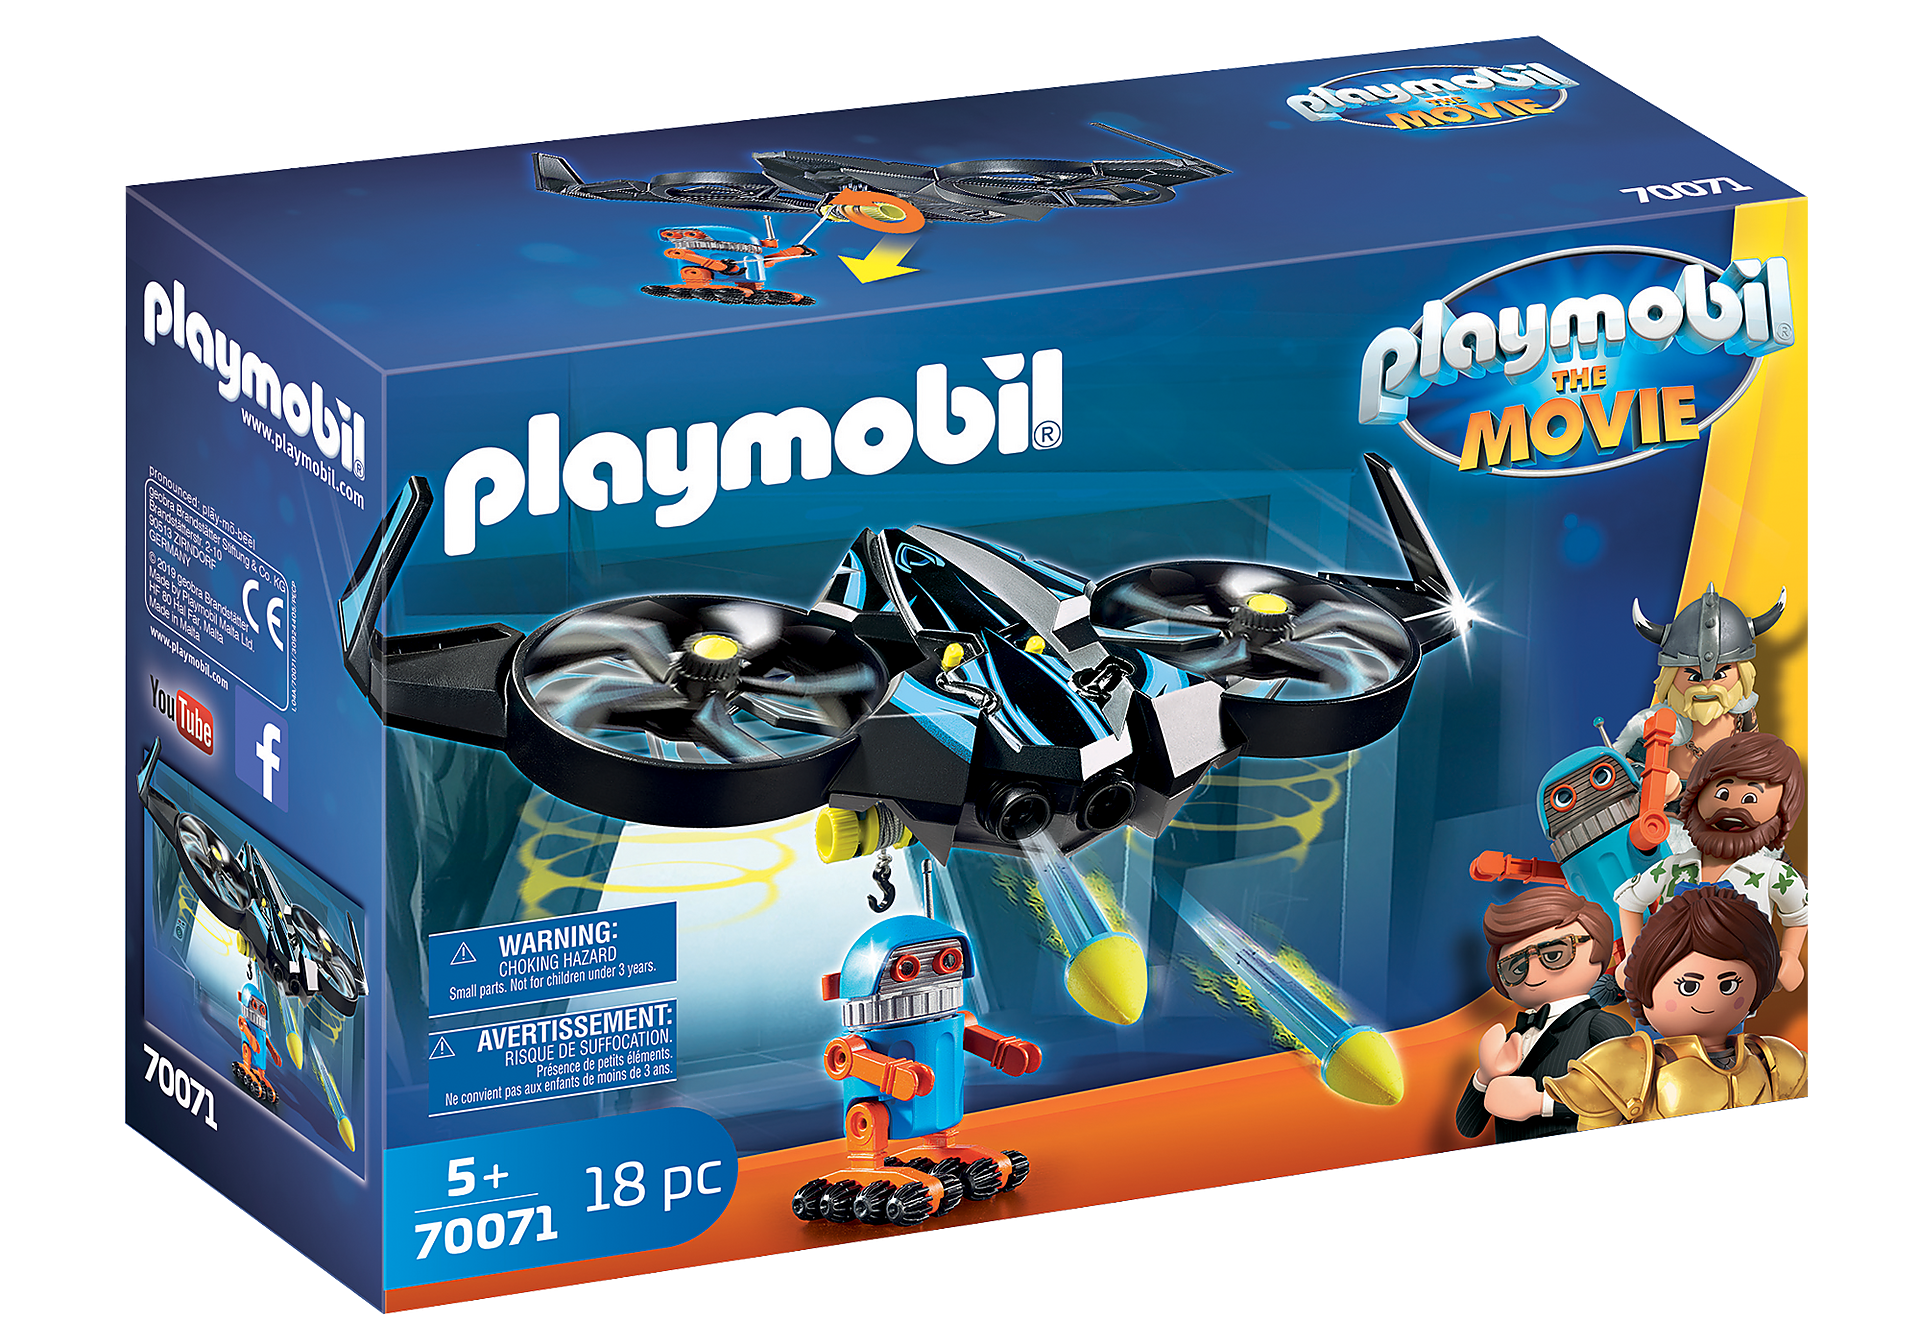 http://media.playmobil.com/i/playmobil/70071_product_box_front/PLAYMOBIL: THE MOVIE Robotitron z dronem